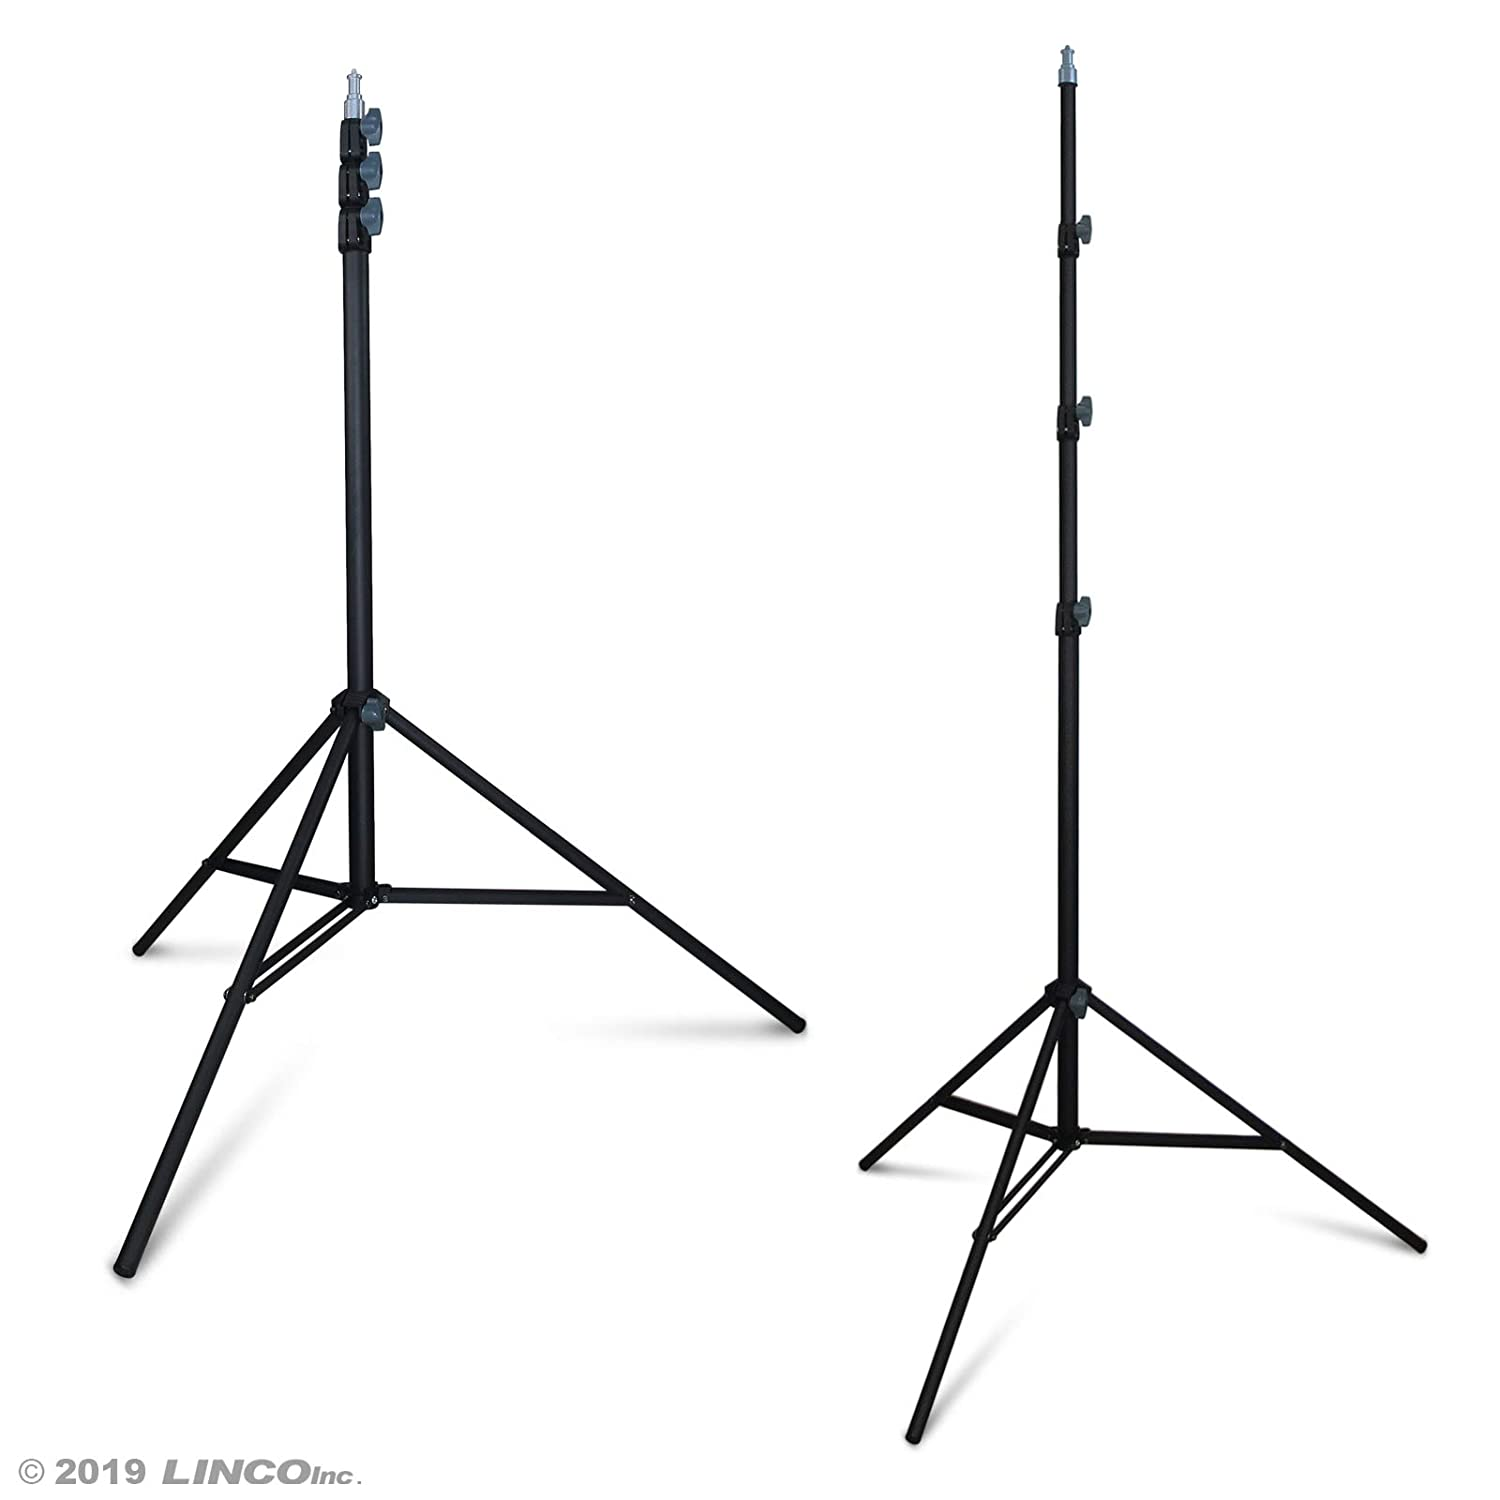 Video and Product Photography Portrait LINCO Lincostore Zenith 9 feet//288 cm Photo Studio Light Stands Set of Two for HTC Vive VR